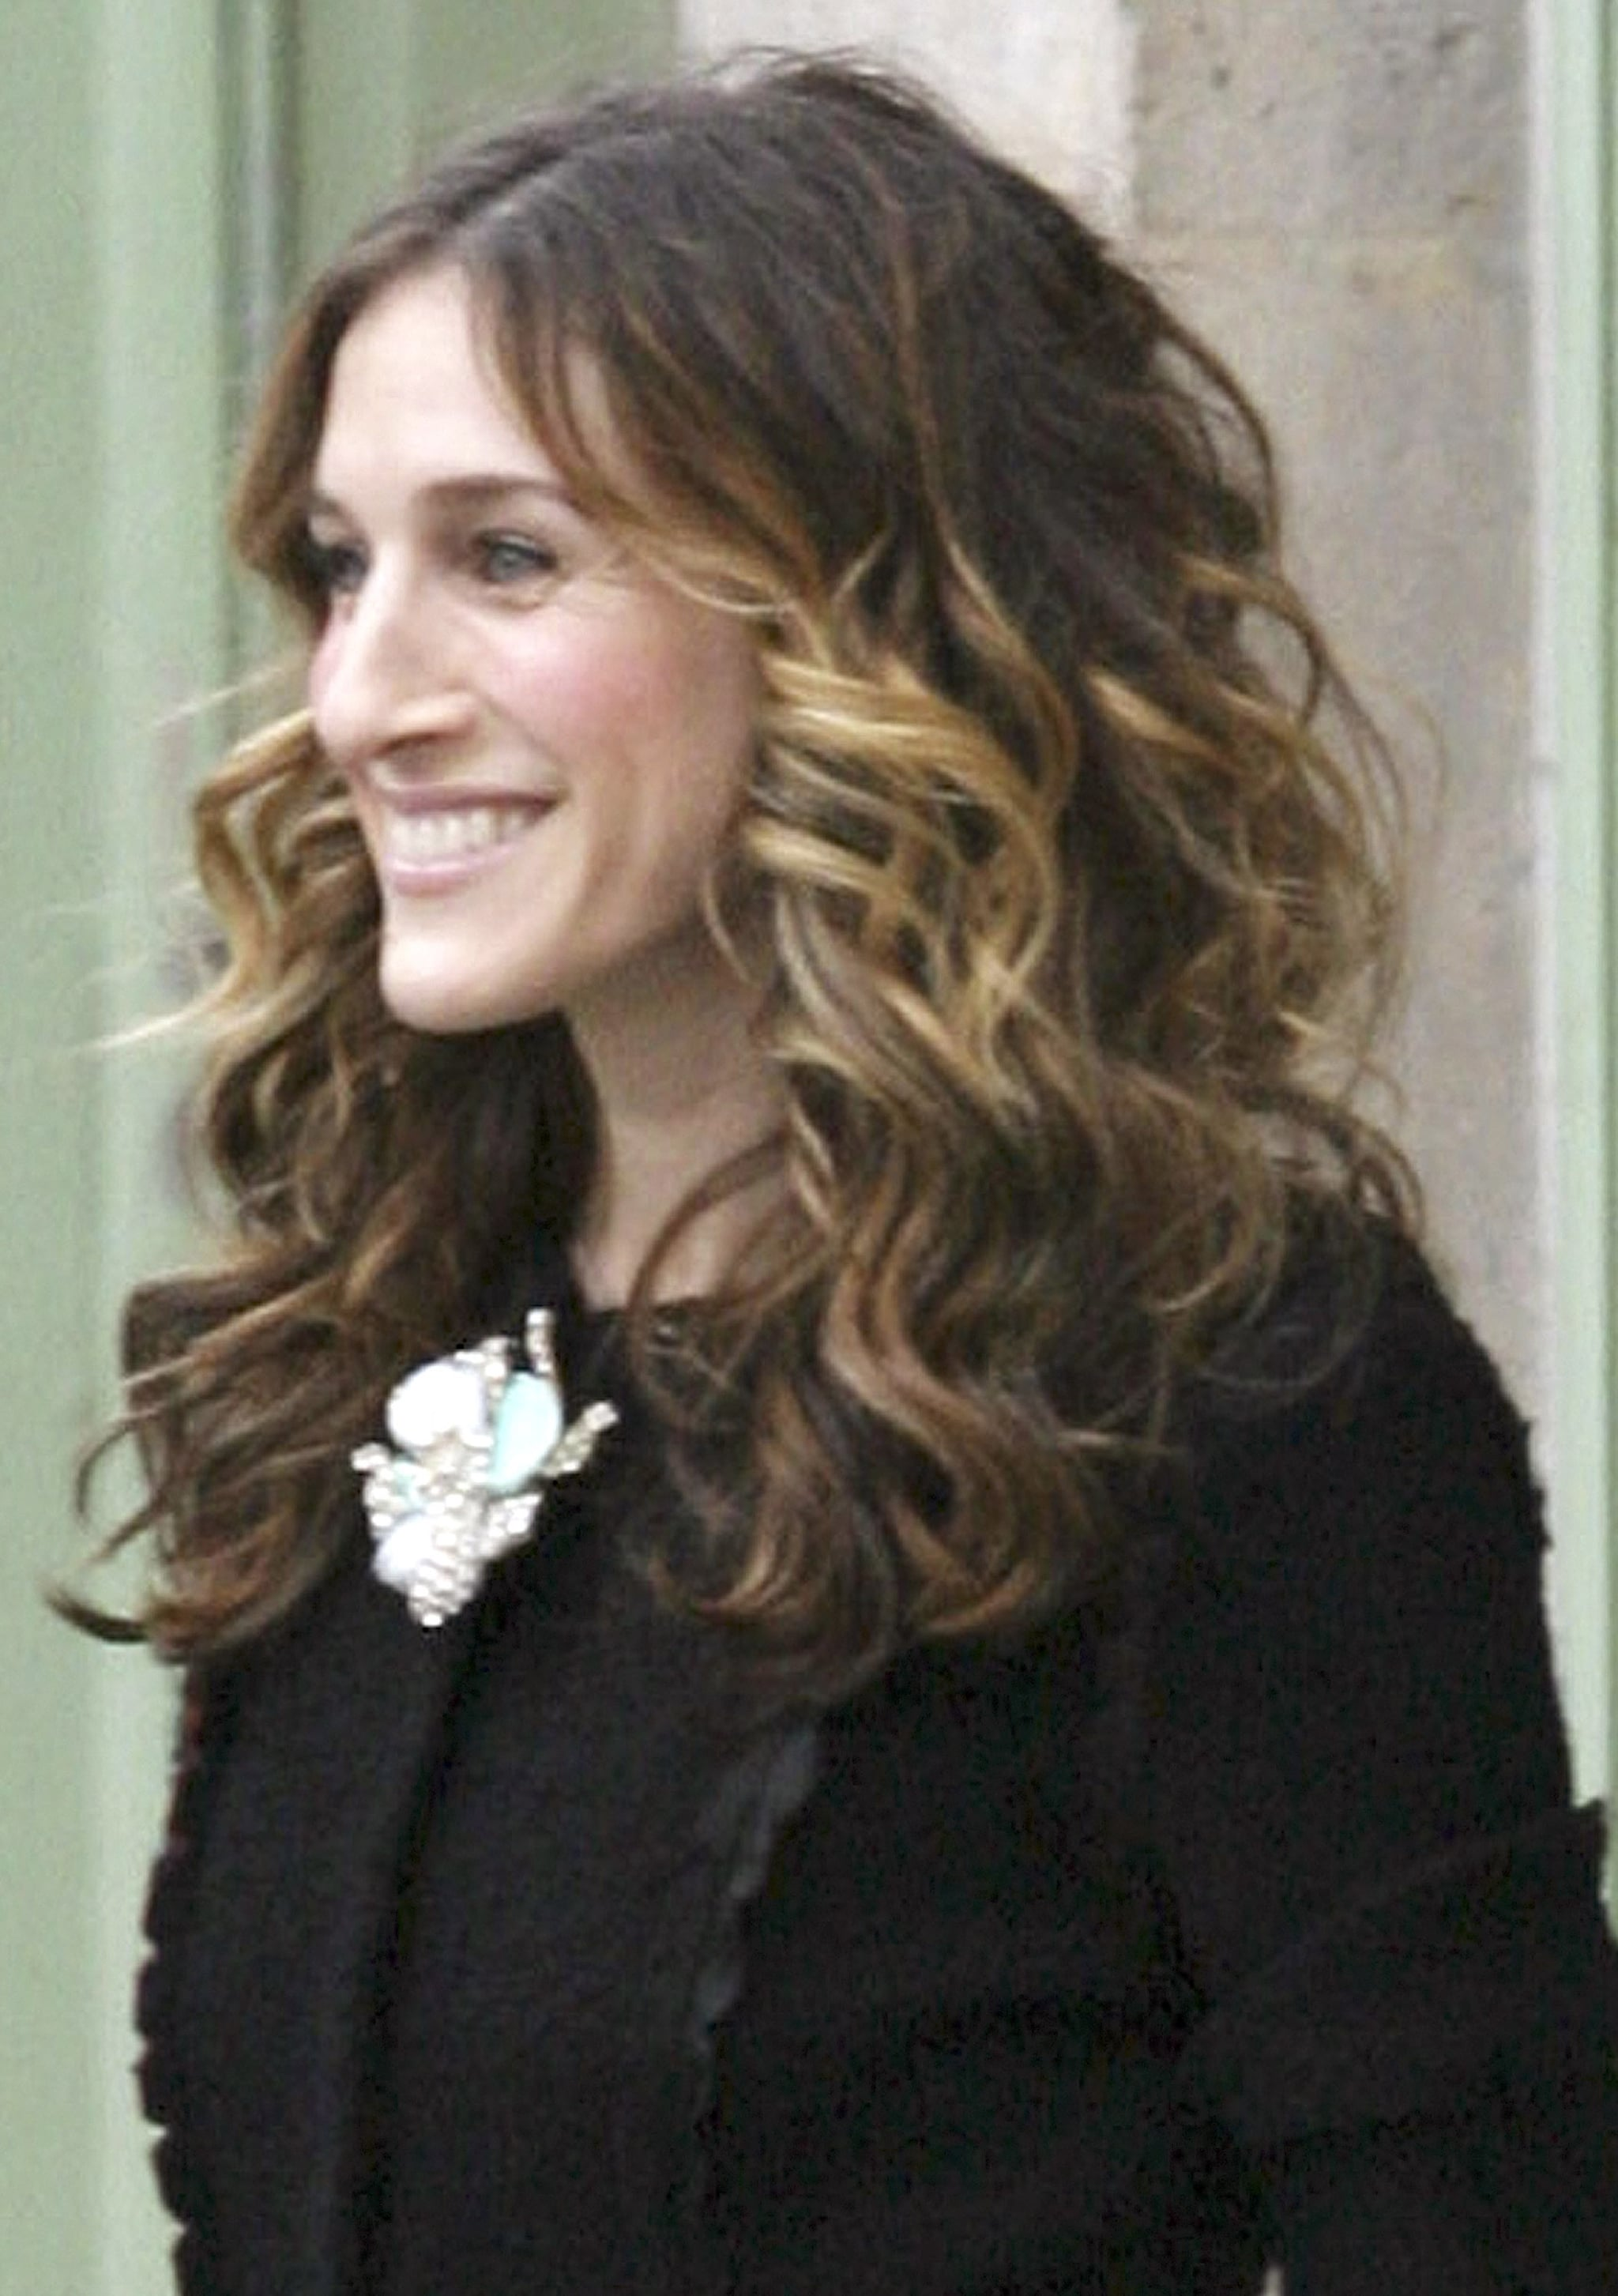 Here in the series finale, a head full of curls and a neutral makeup palette make for a delicate, feminine look.